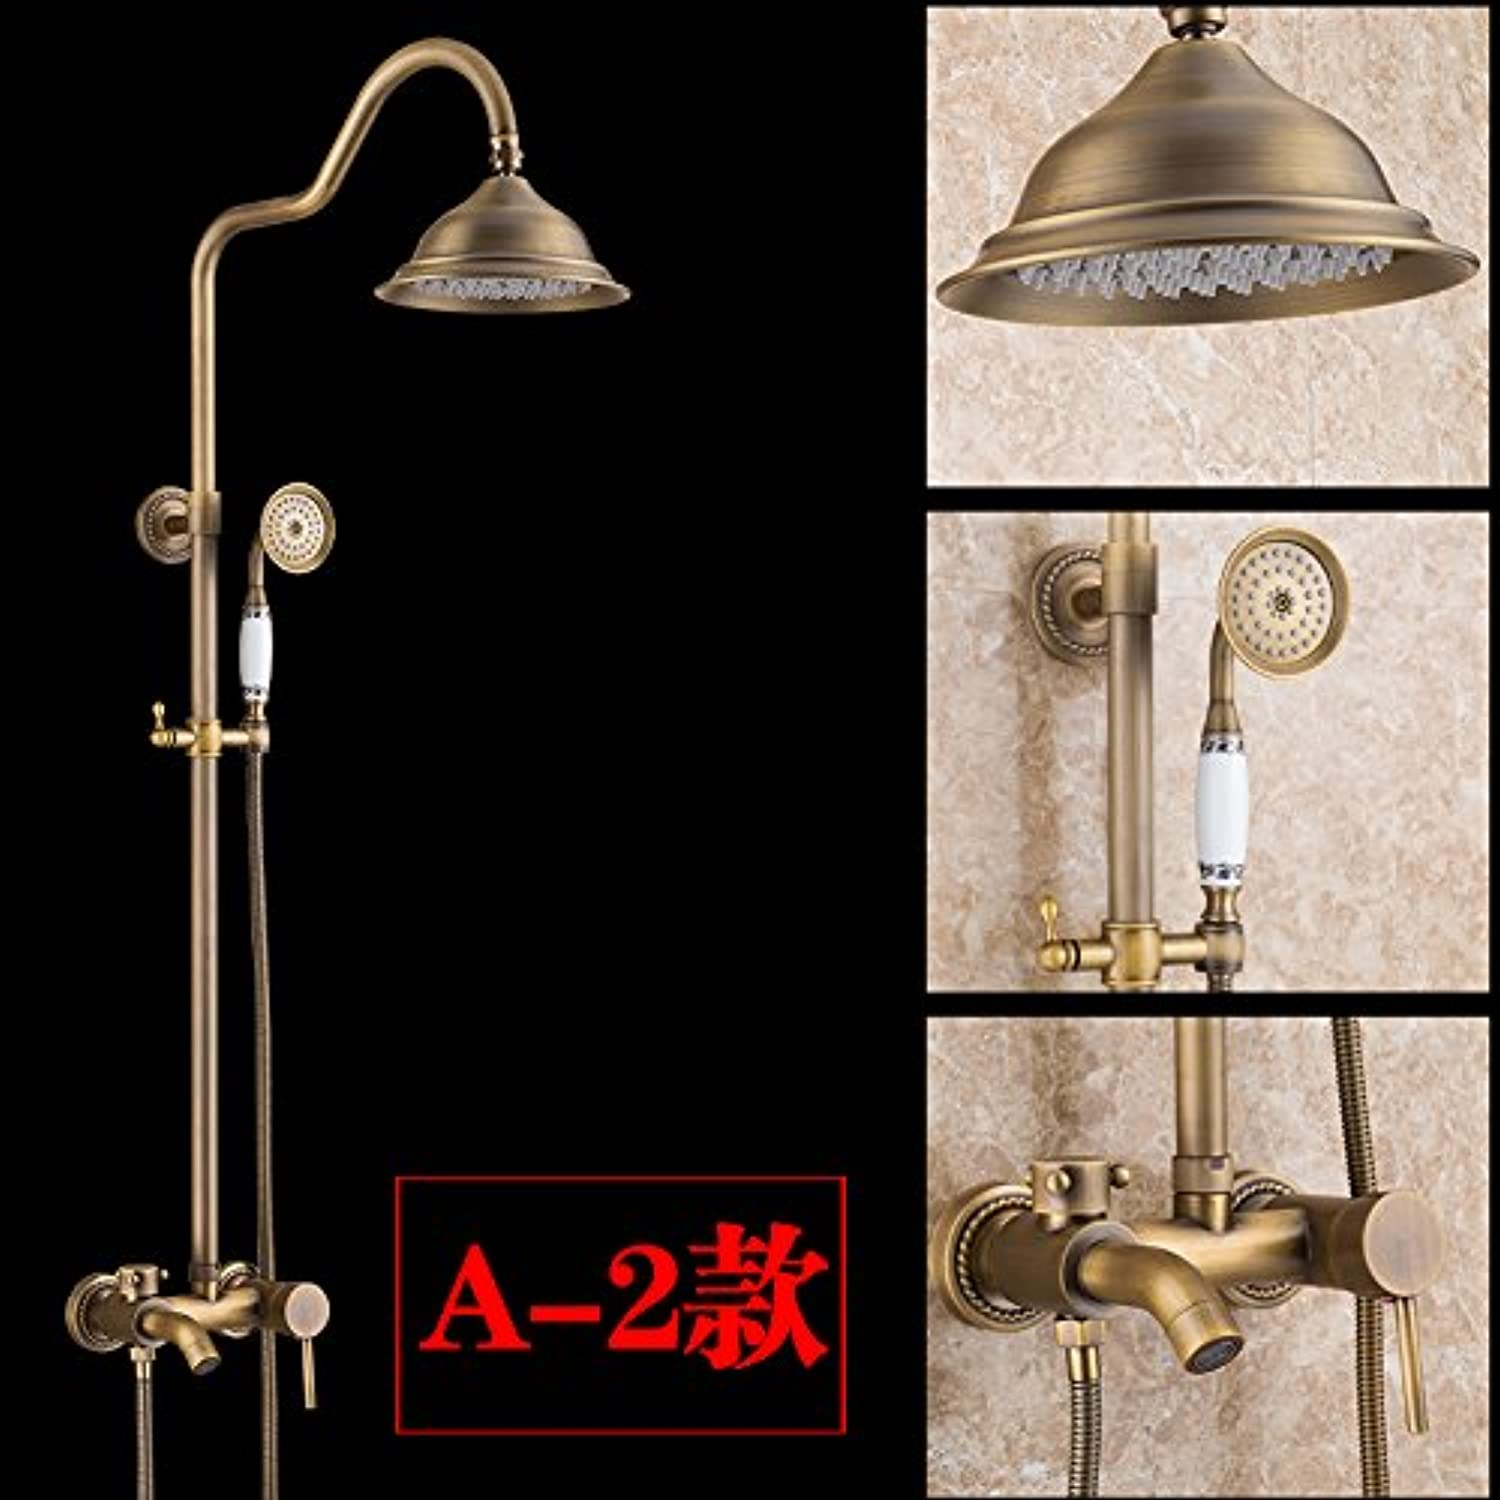 Commercial Bathroom Sink Taps Hlluya Professional Sink Mixer Tap Kitchen Faucet Antique-brass antique Bath Faucet Kit double-tap the hot and cold shower bath shower faucet Style 3 Janitorial & Sanitation Supplies